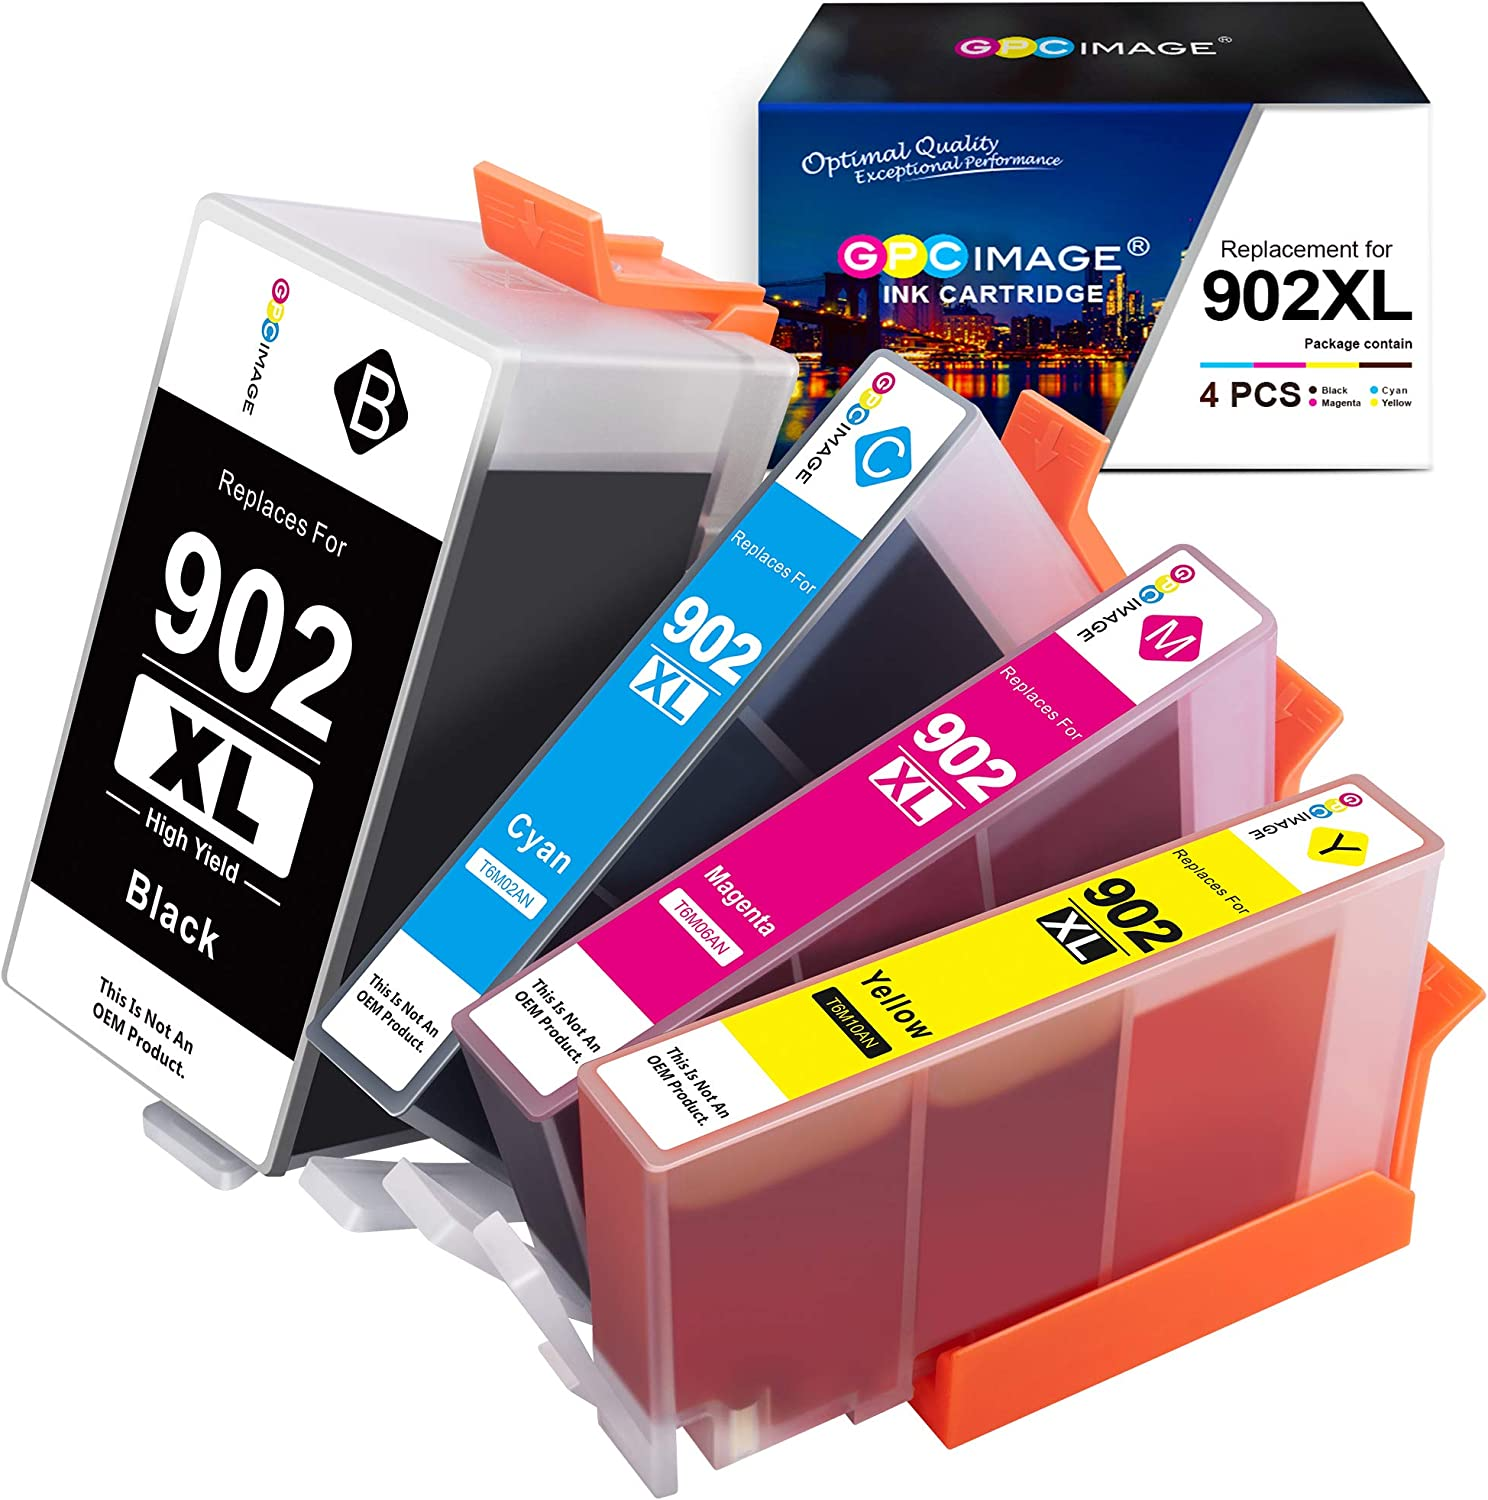 GPC Image Compatible Ink Cartridge Replacement for HP 902XL 902 Ink Cartridges to use with Officejet 6978 6968 6962 6958 6970 6950 6960 Printer (Black, Cyan, Magenta, Yellow, 4 Pack)